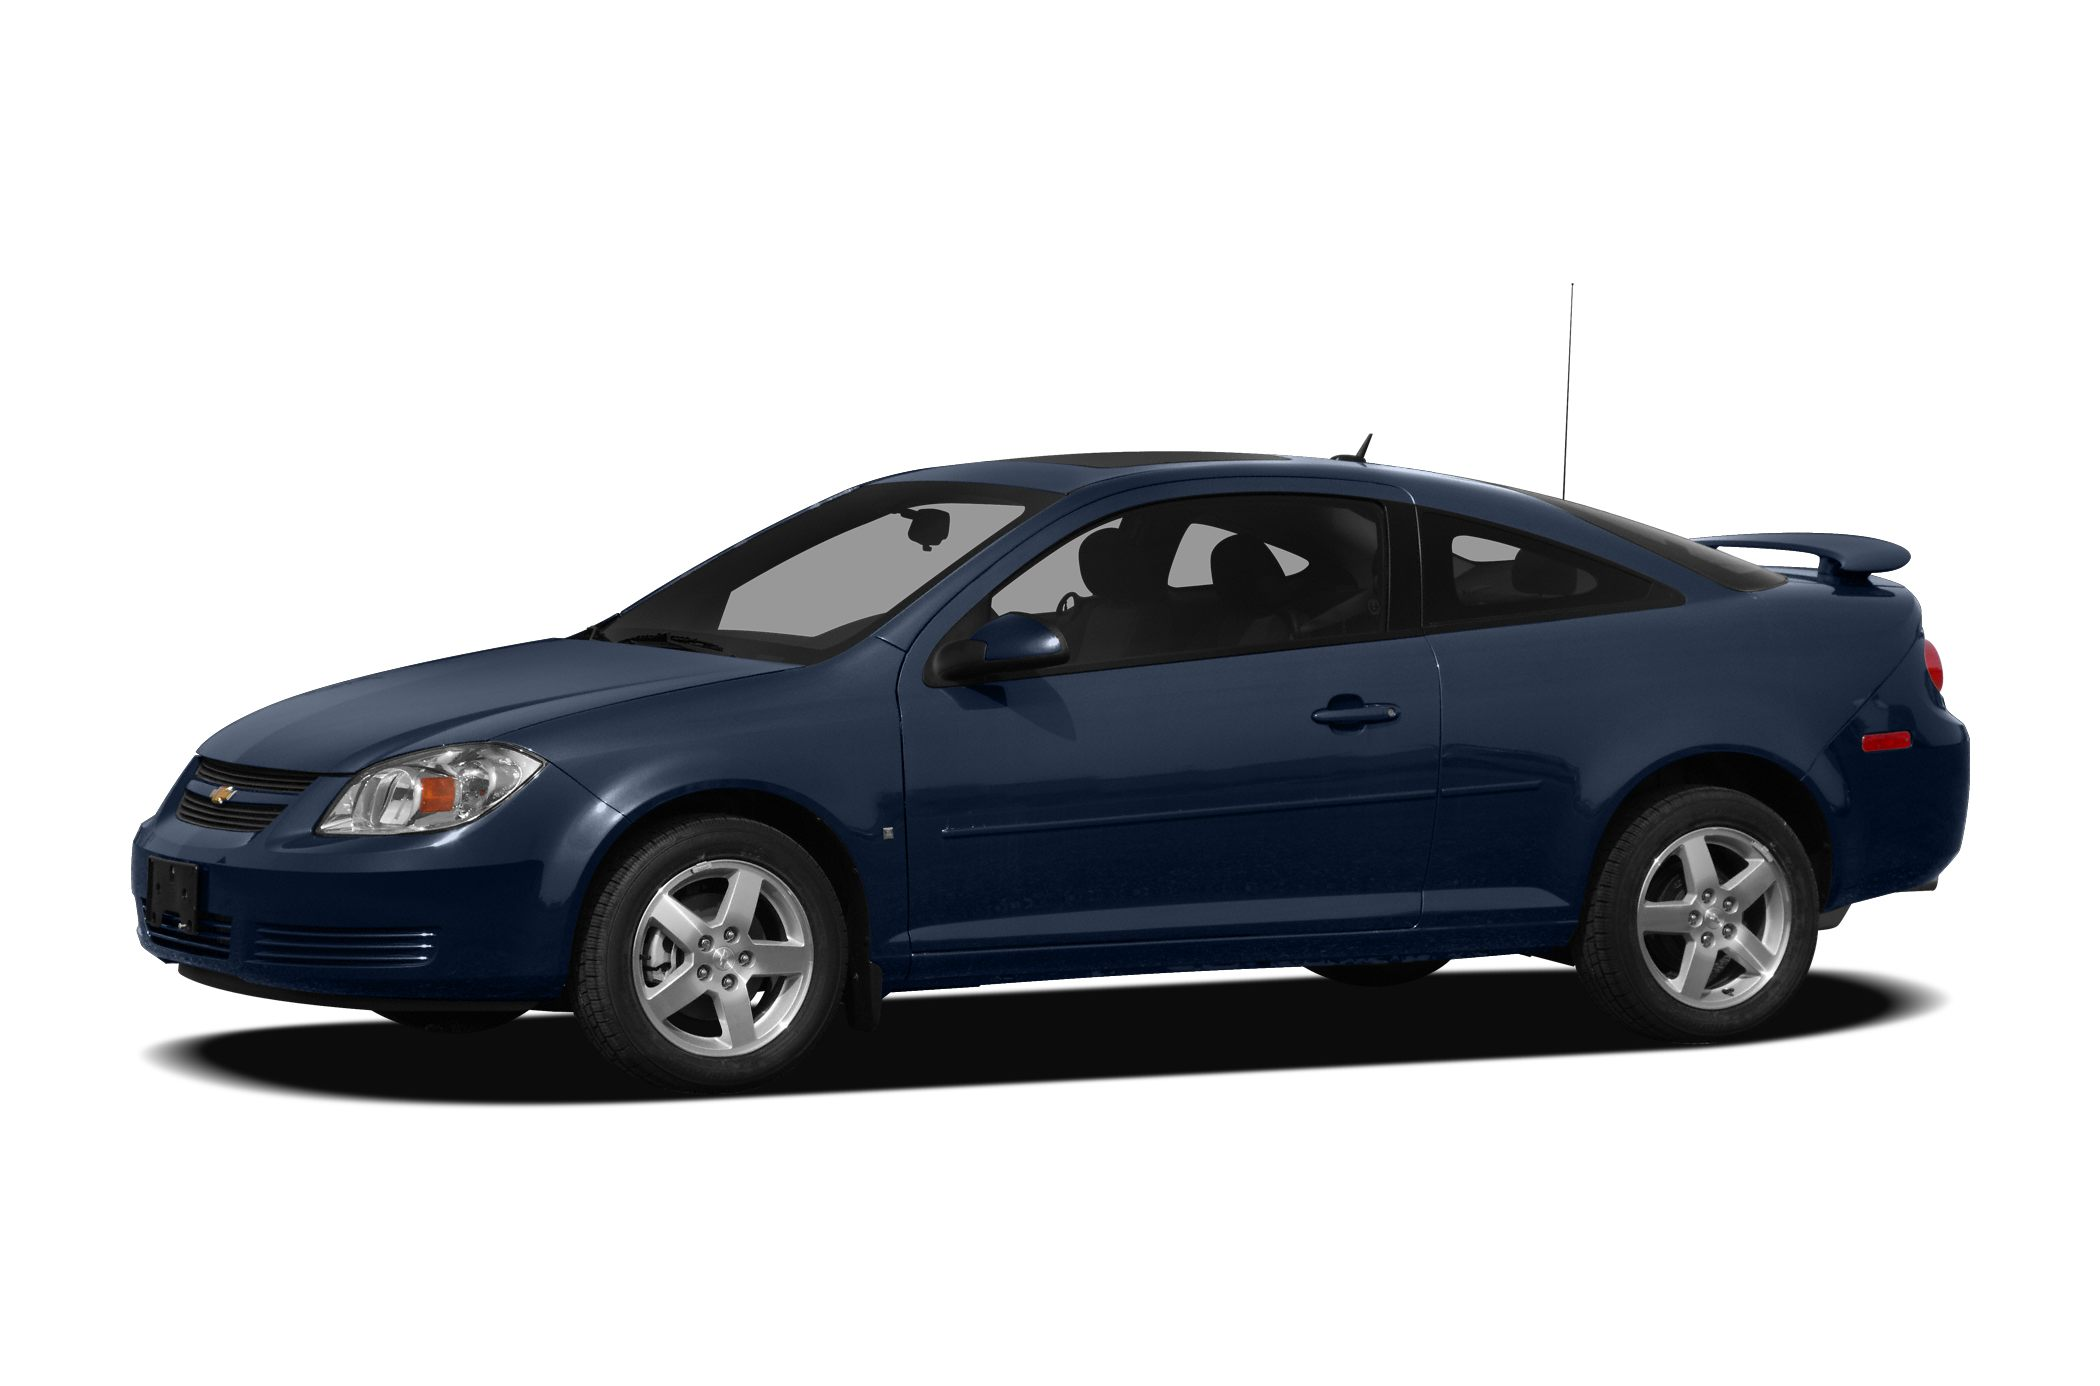 Used Cars Erie Pa Elegant Erie Pa Used Cars for Sale Under 75 000 Miles and Less Than 10 000